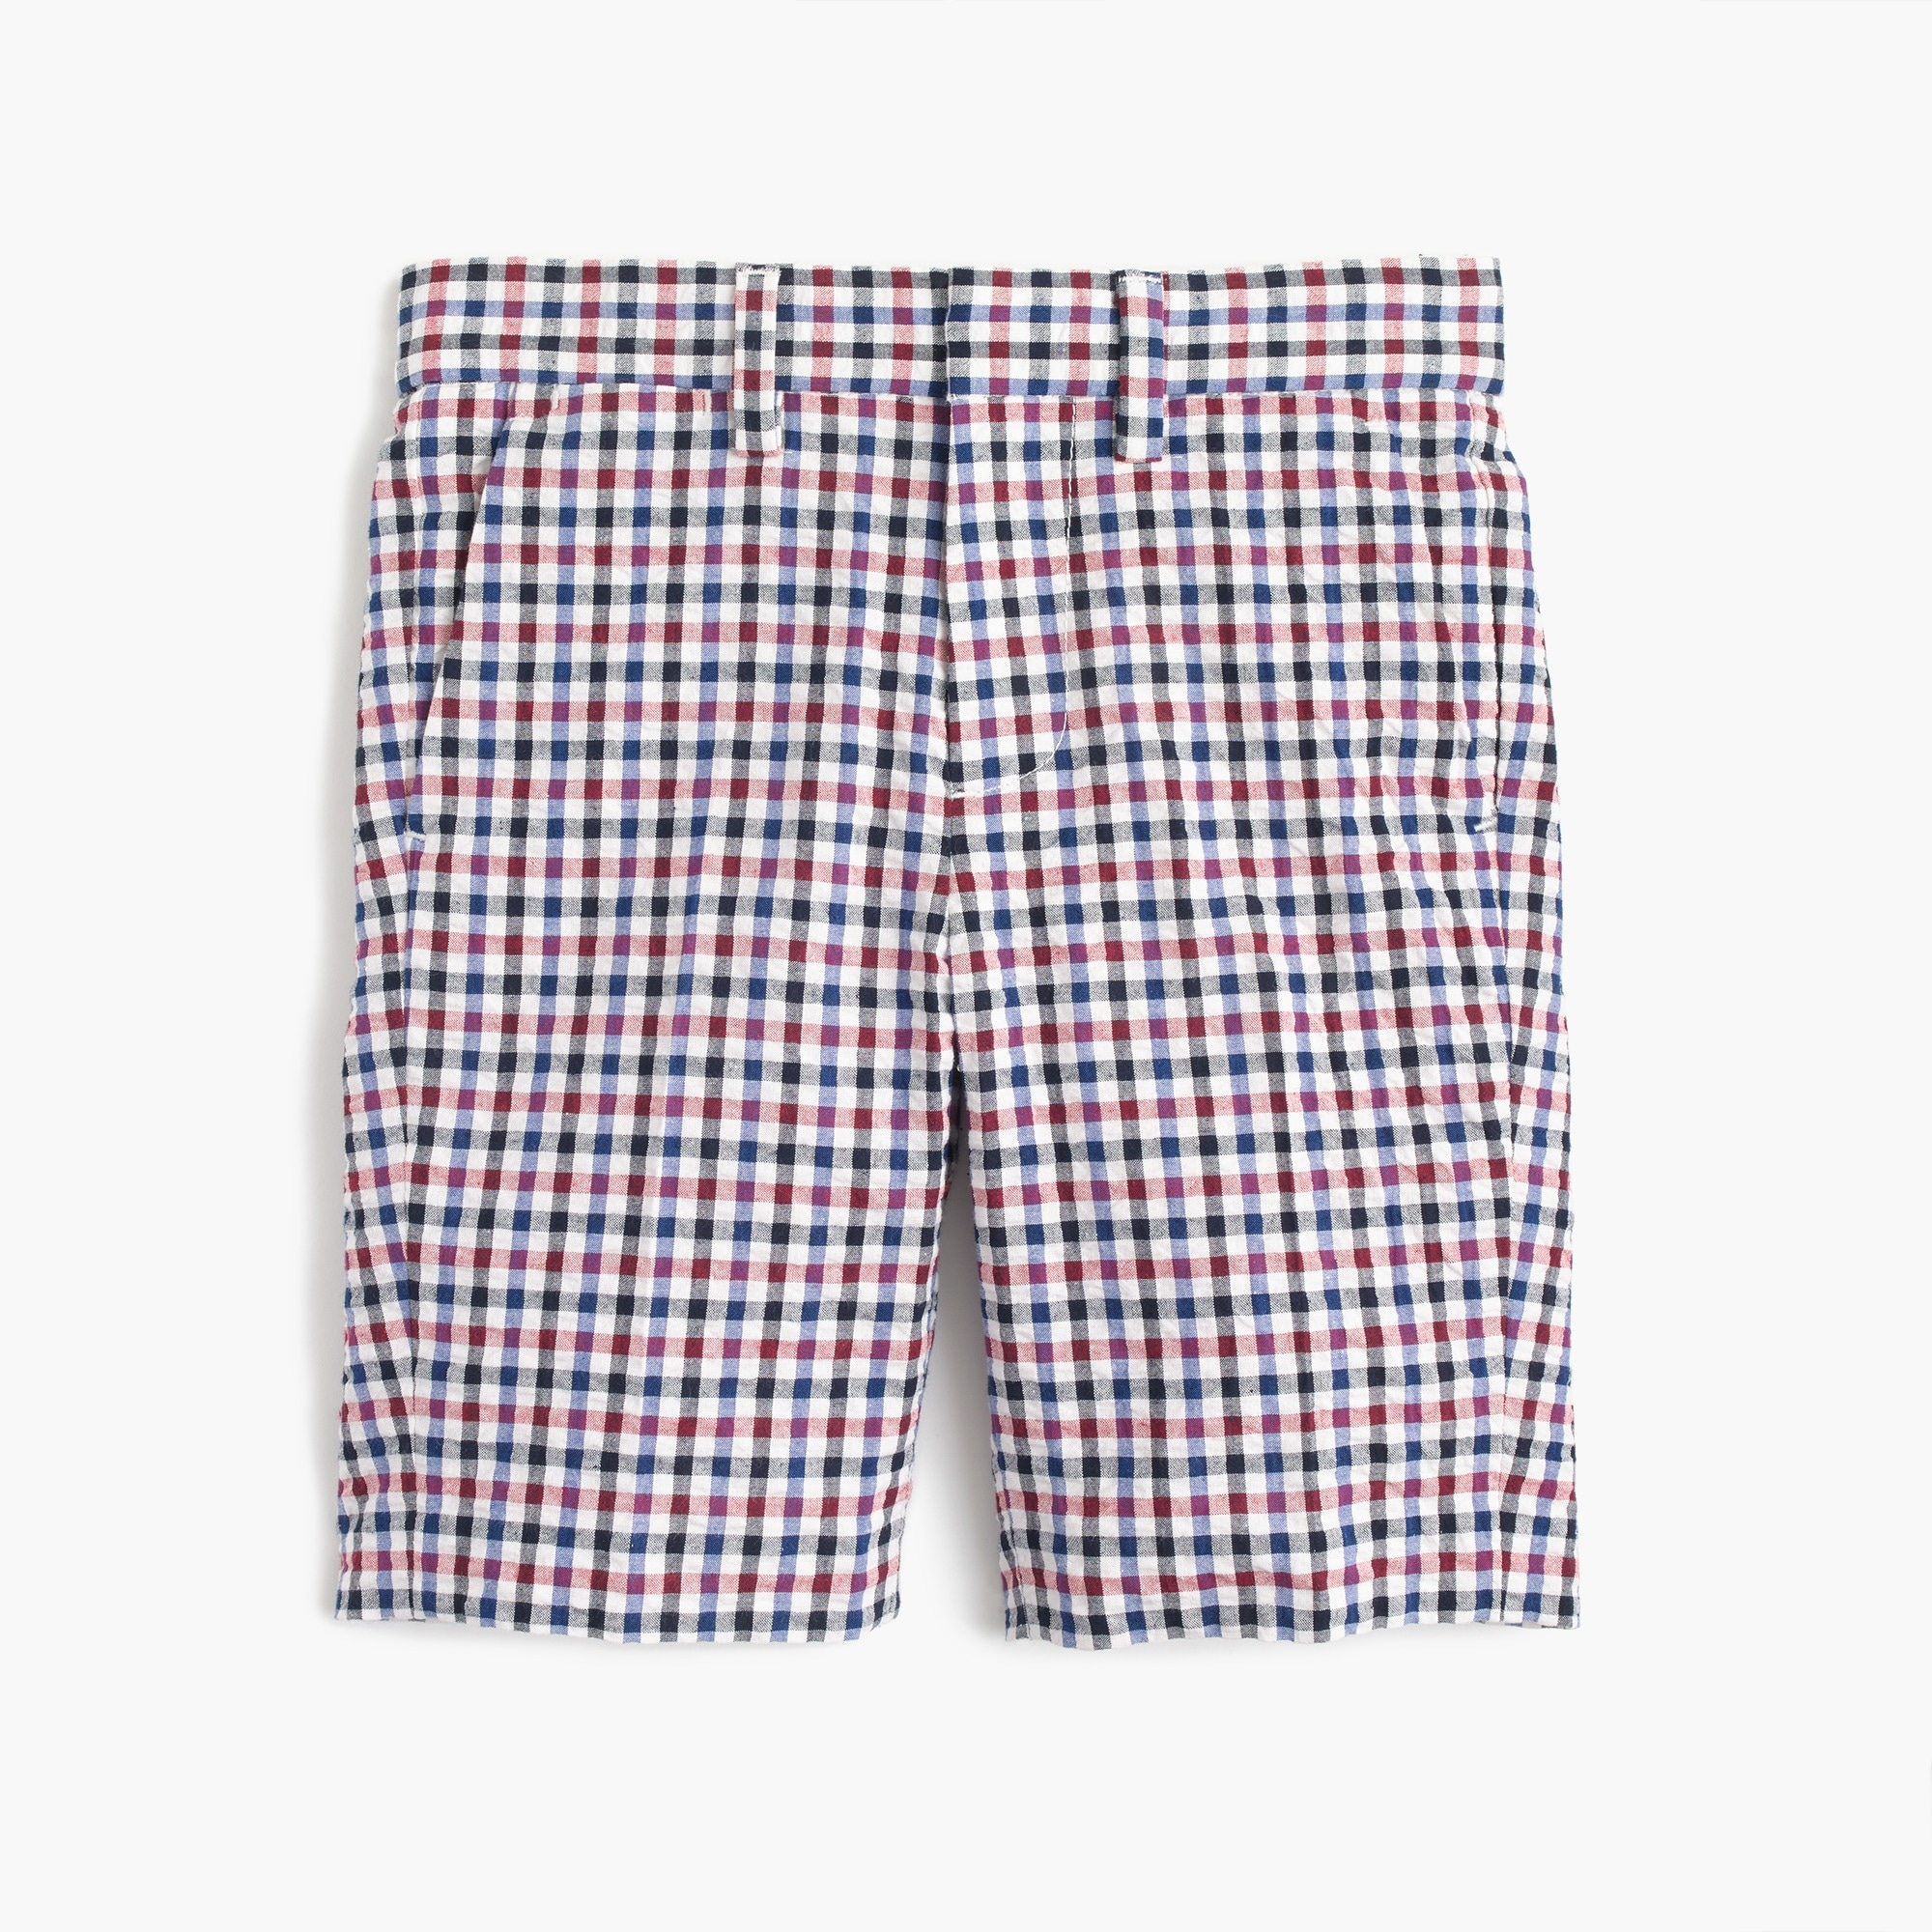 Image 1 for Boys' Ludlow suit short in puckered gingham